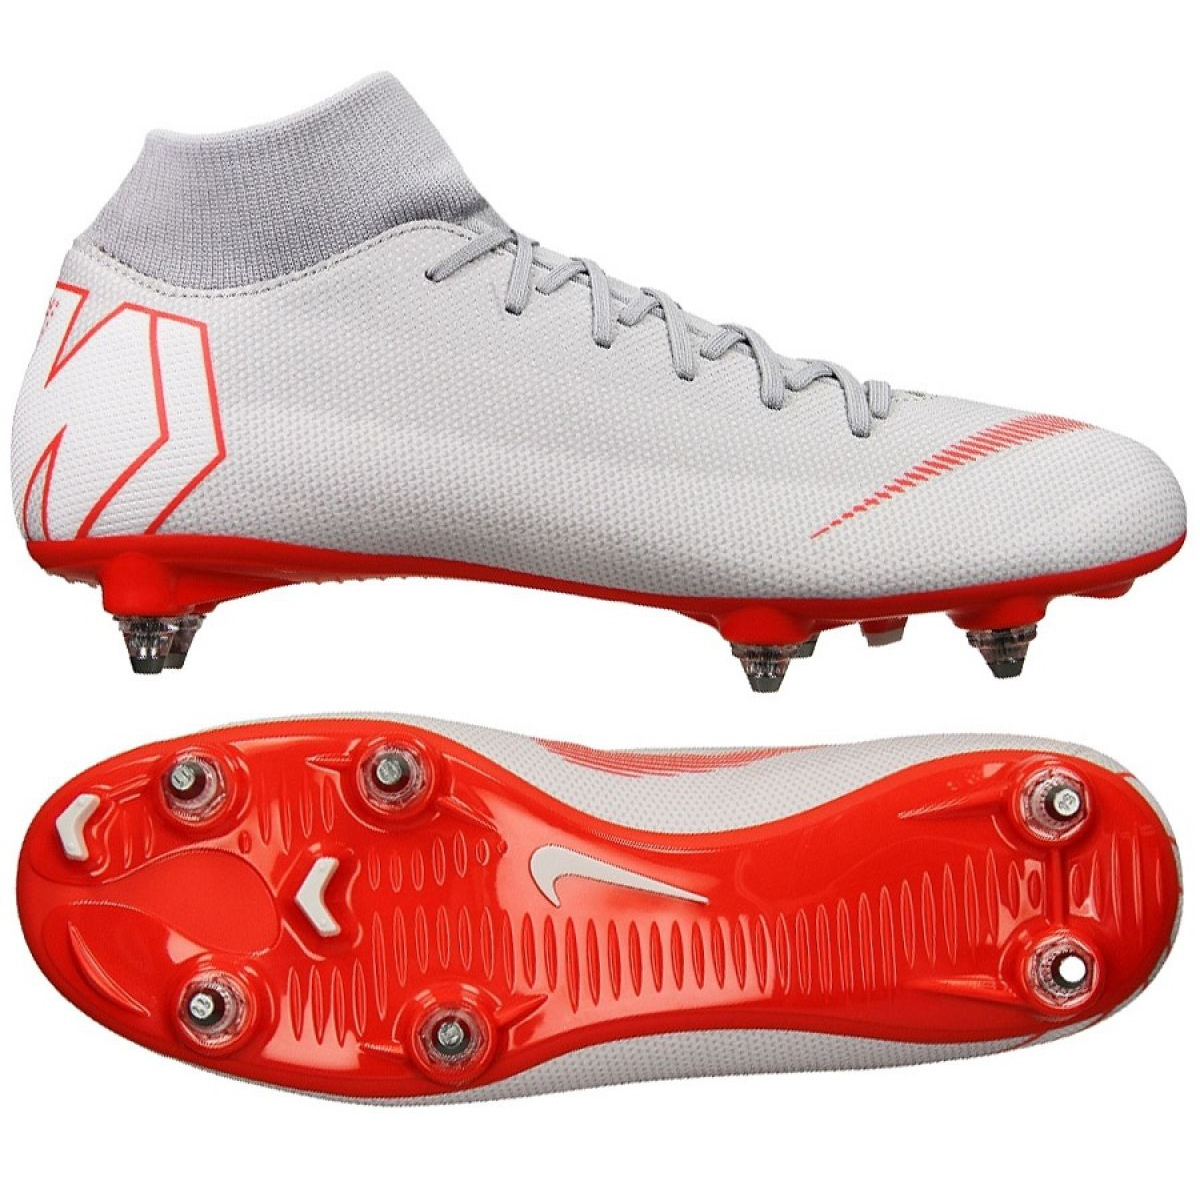 Details About Nike Mercurial Superfly 6 Academy Sg Pro M Ah7364 060 Football Shoes